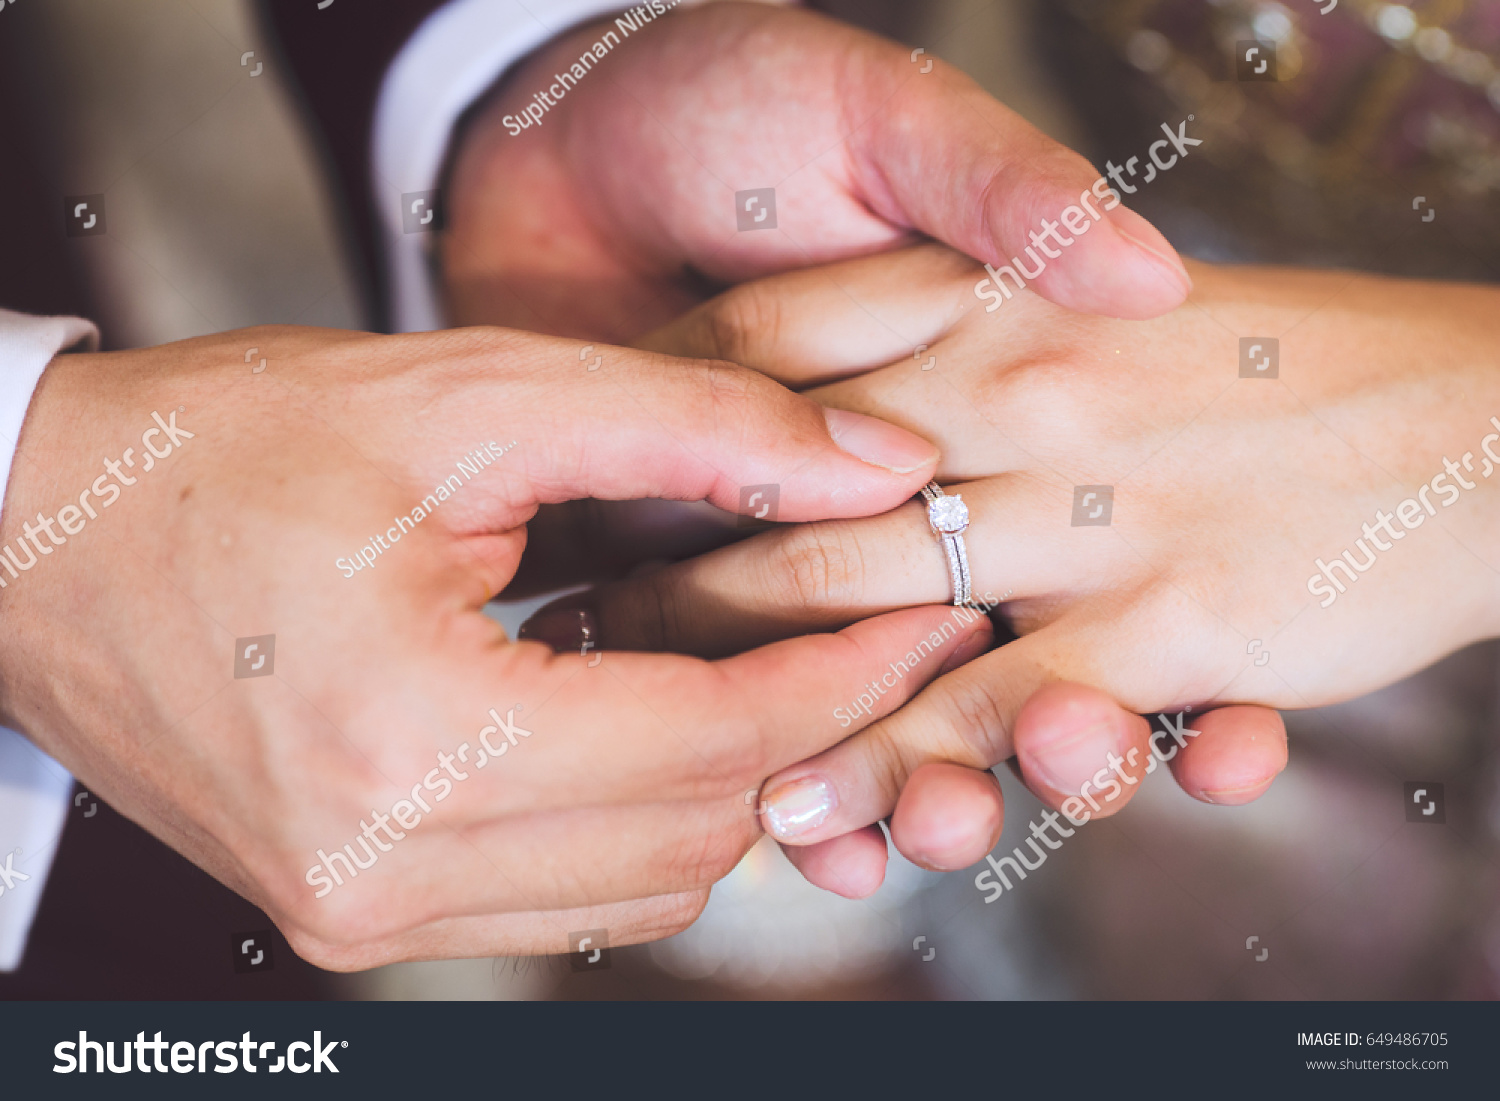 Couples Hands Wedding Rings Bride Groom Hands Stock Photo (Edit Now ...